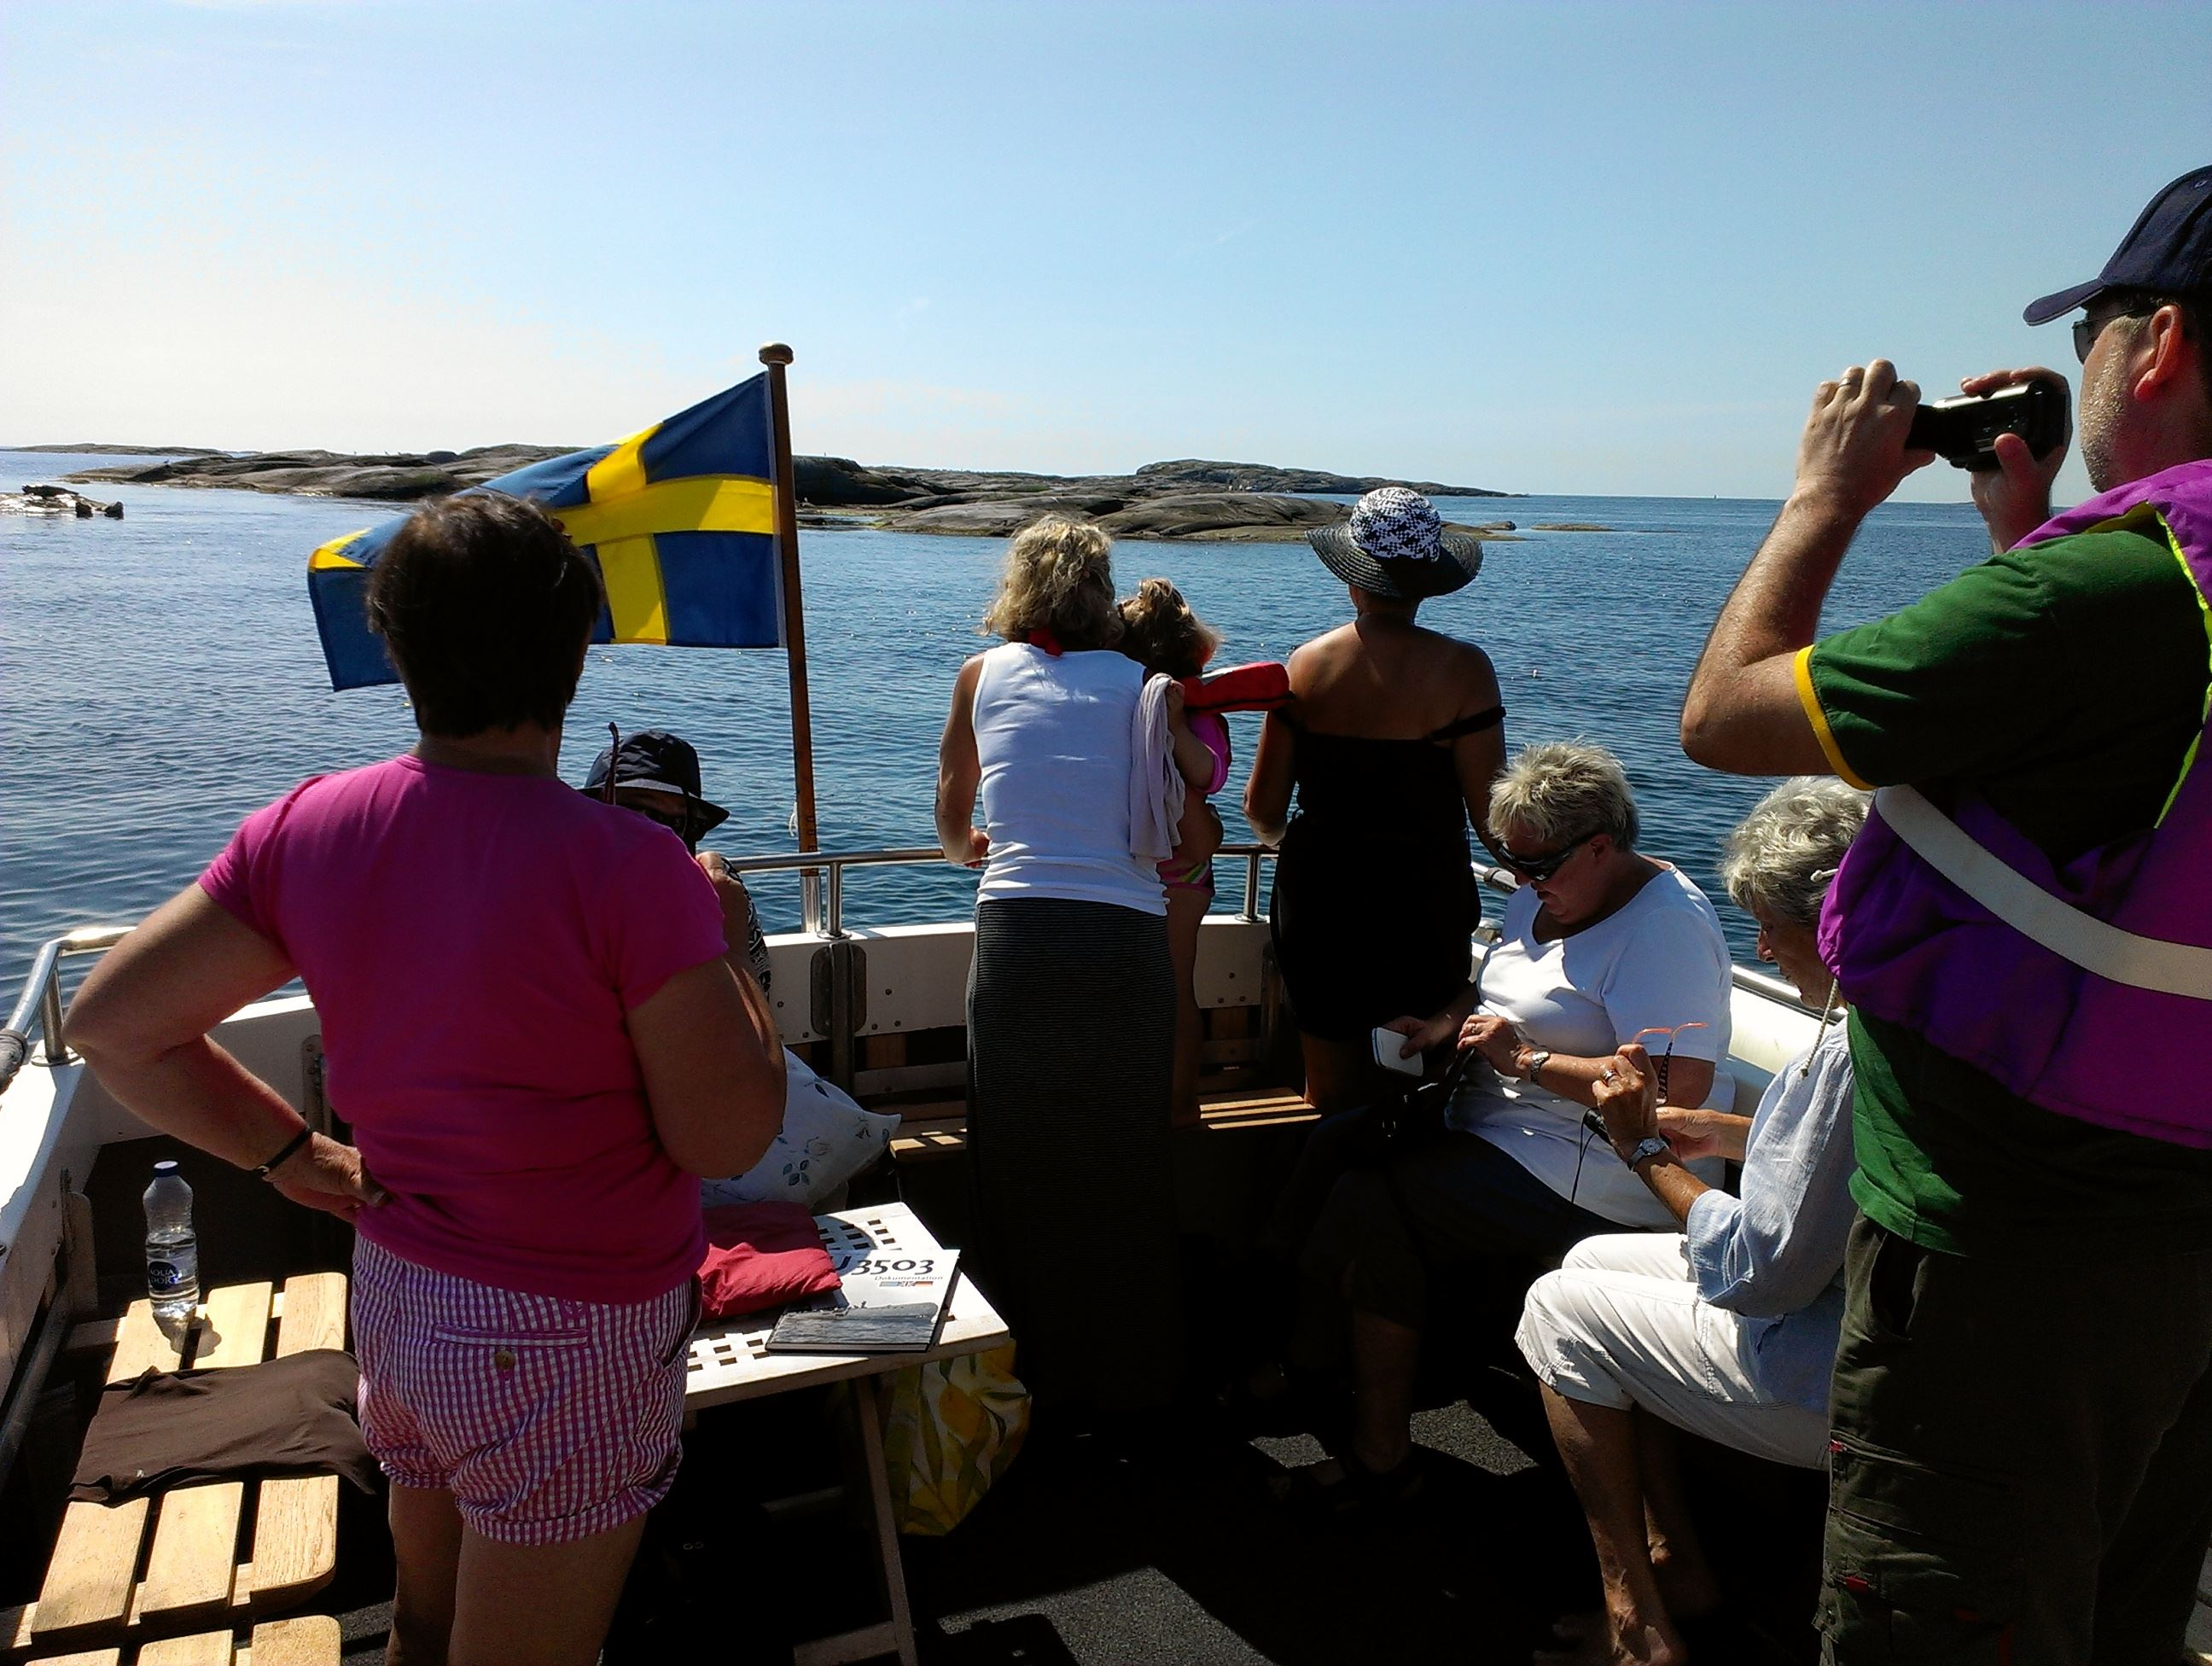 Guided archipelago tour with seal safari and one visit at the island of Vinga